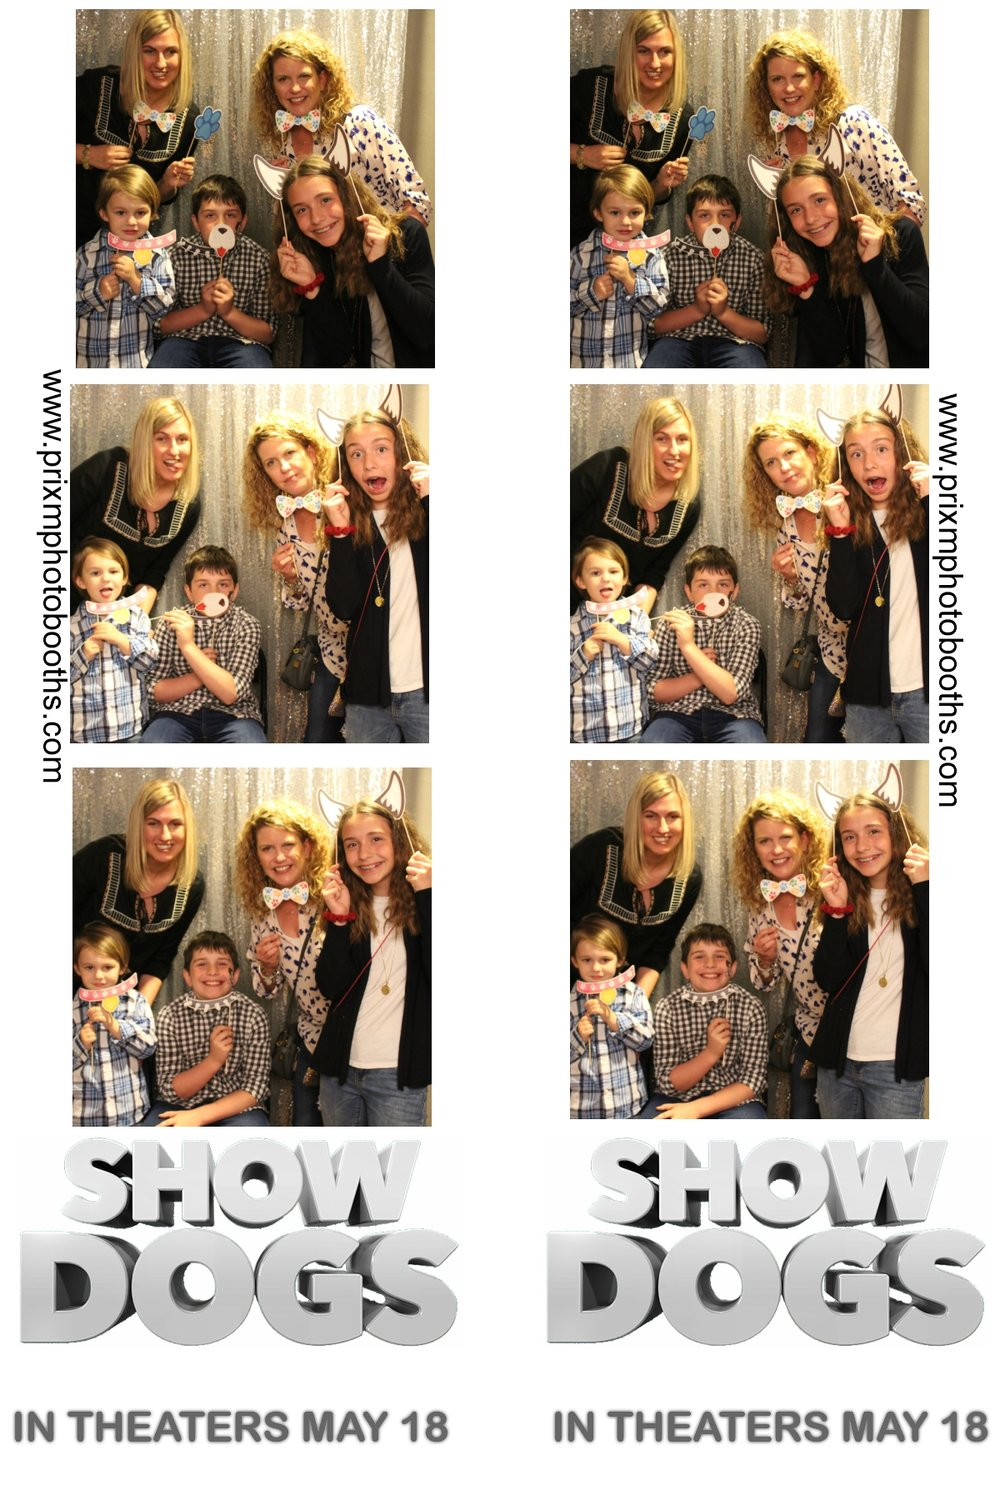 show dogs movie photo booth